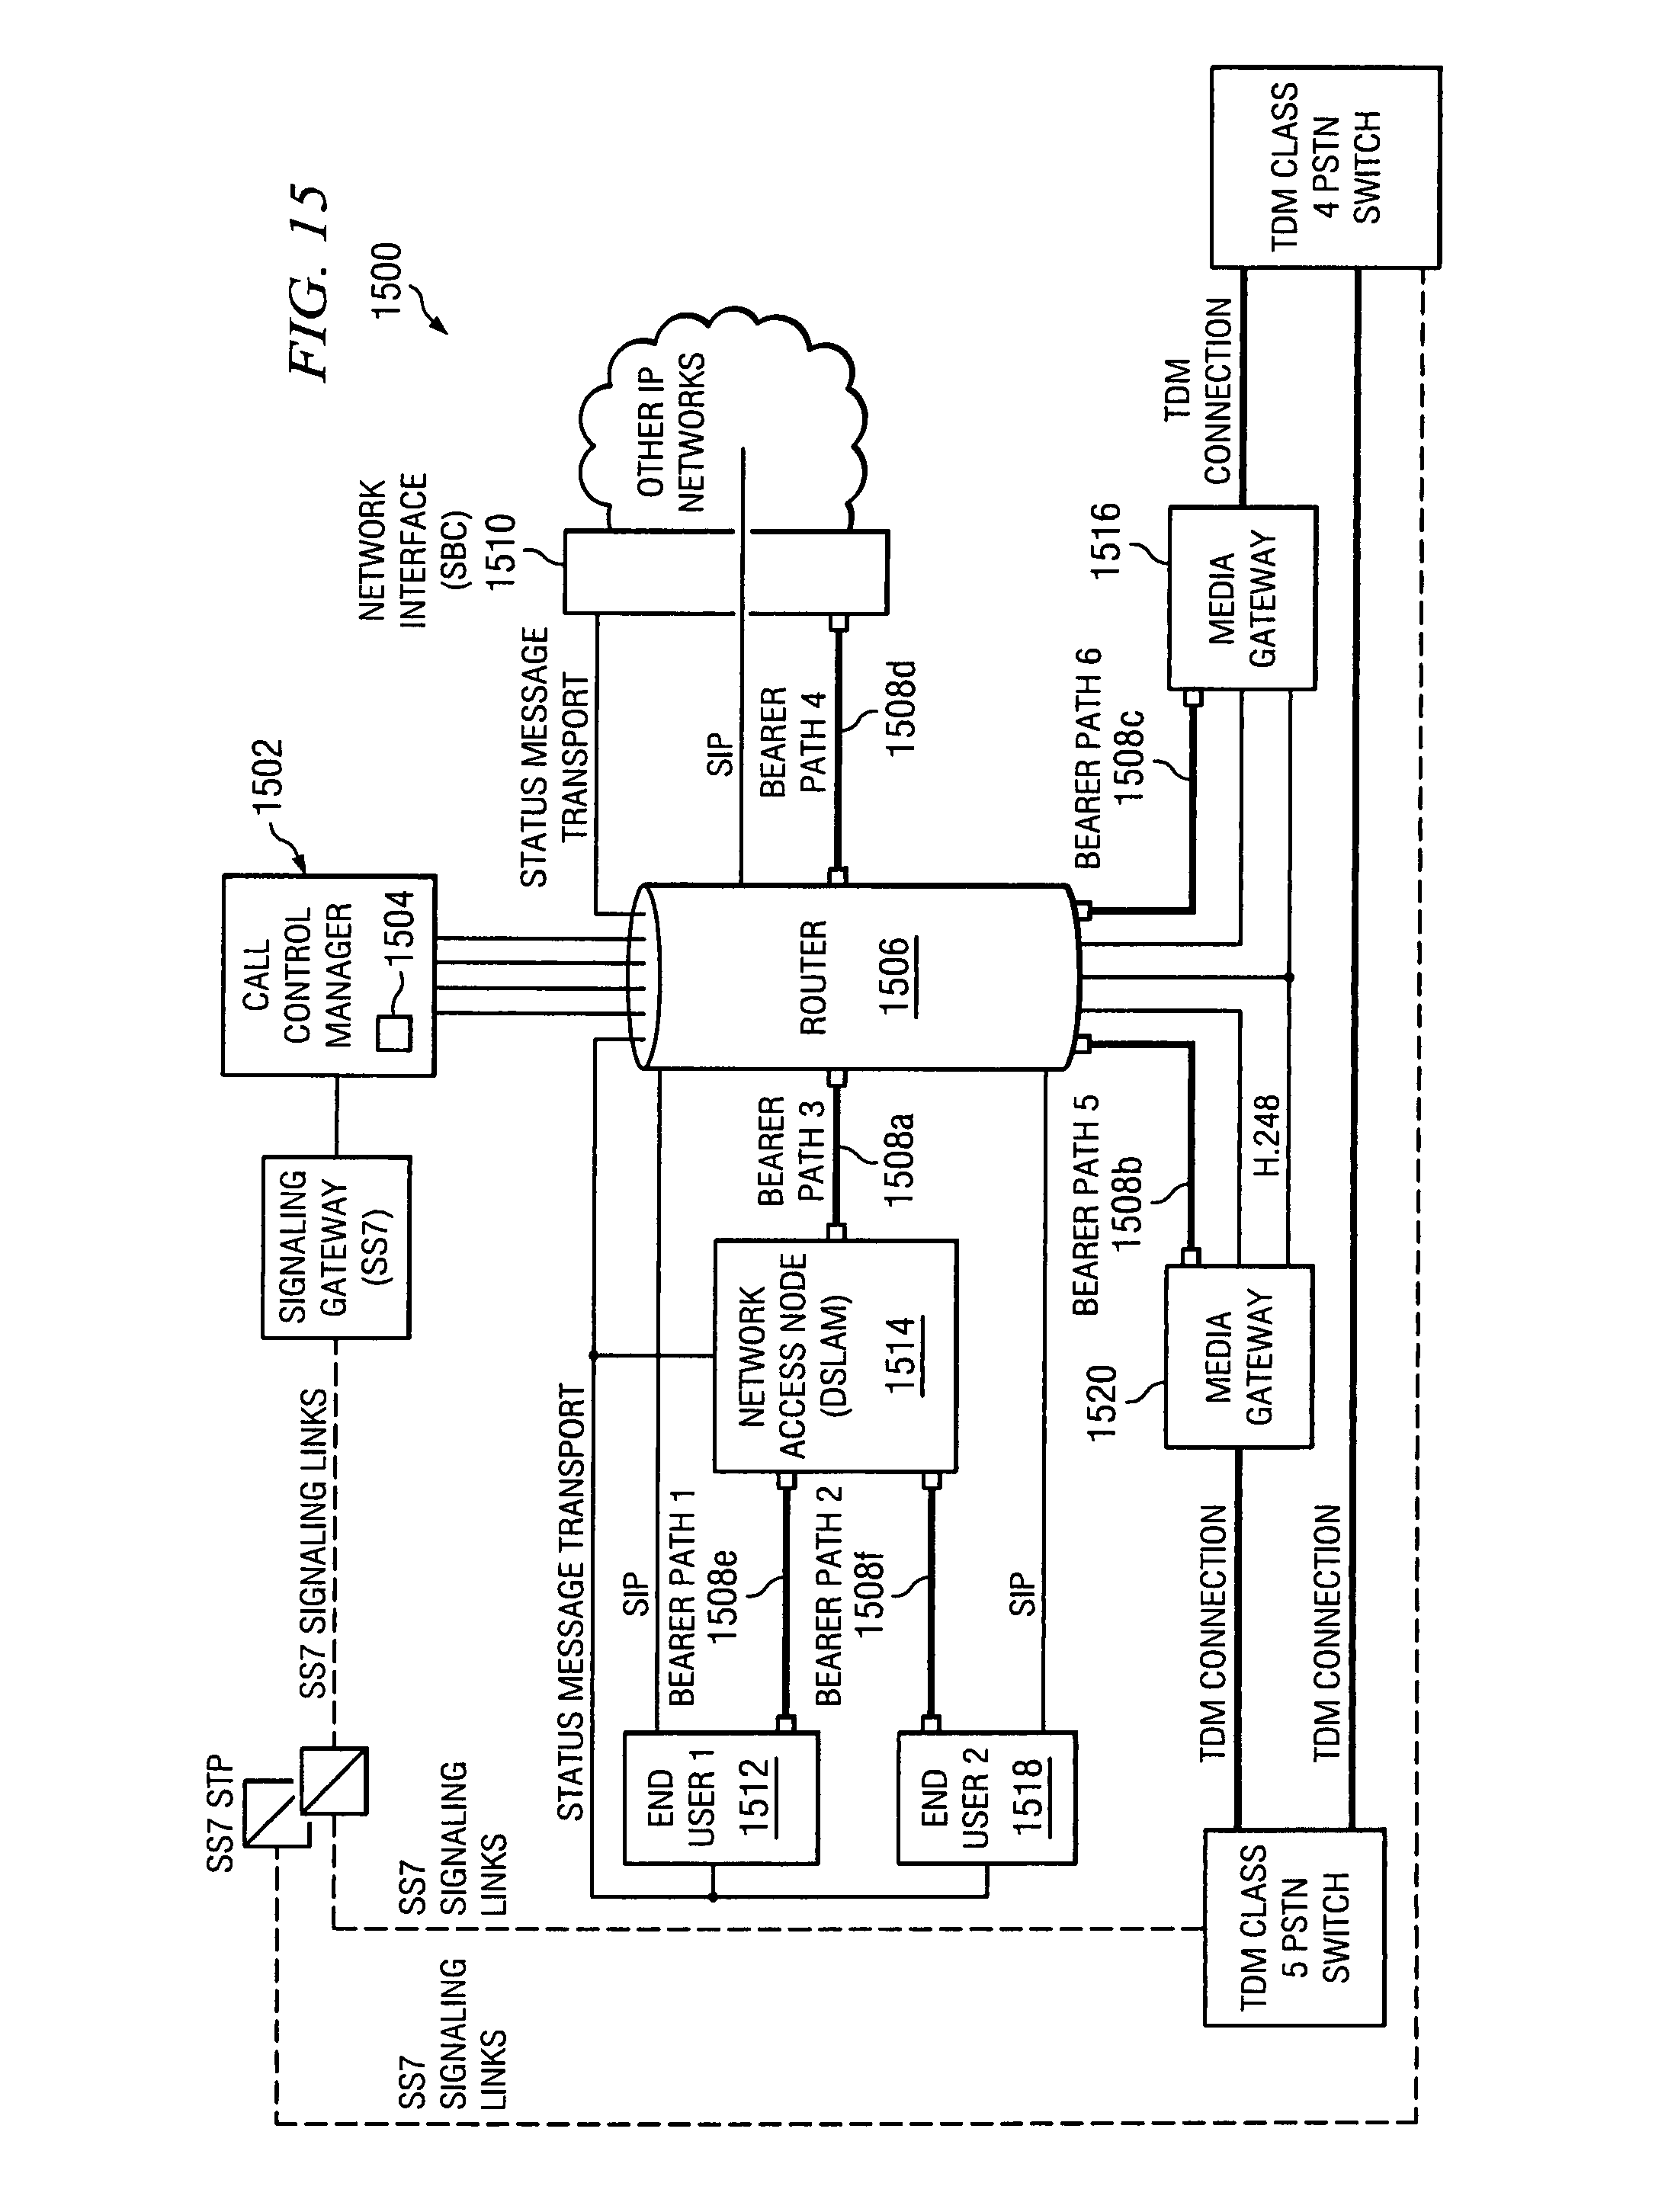 Patent Us 8228791 B2 Moreover Outside Phone Box Wiring For Dsl Besides Nid